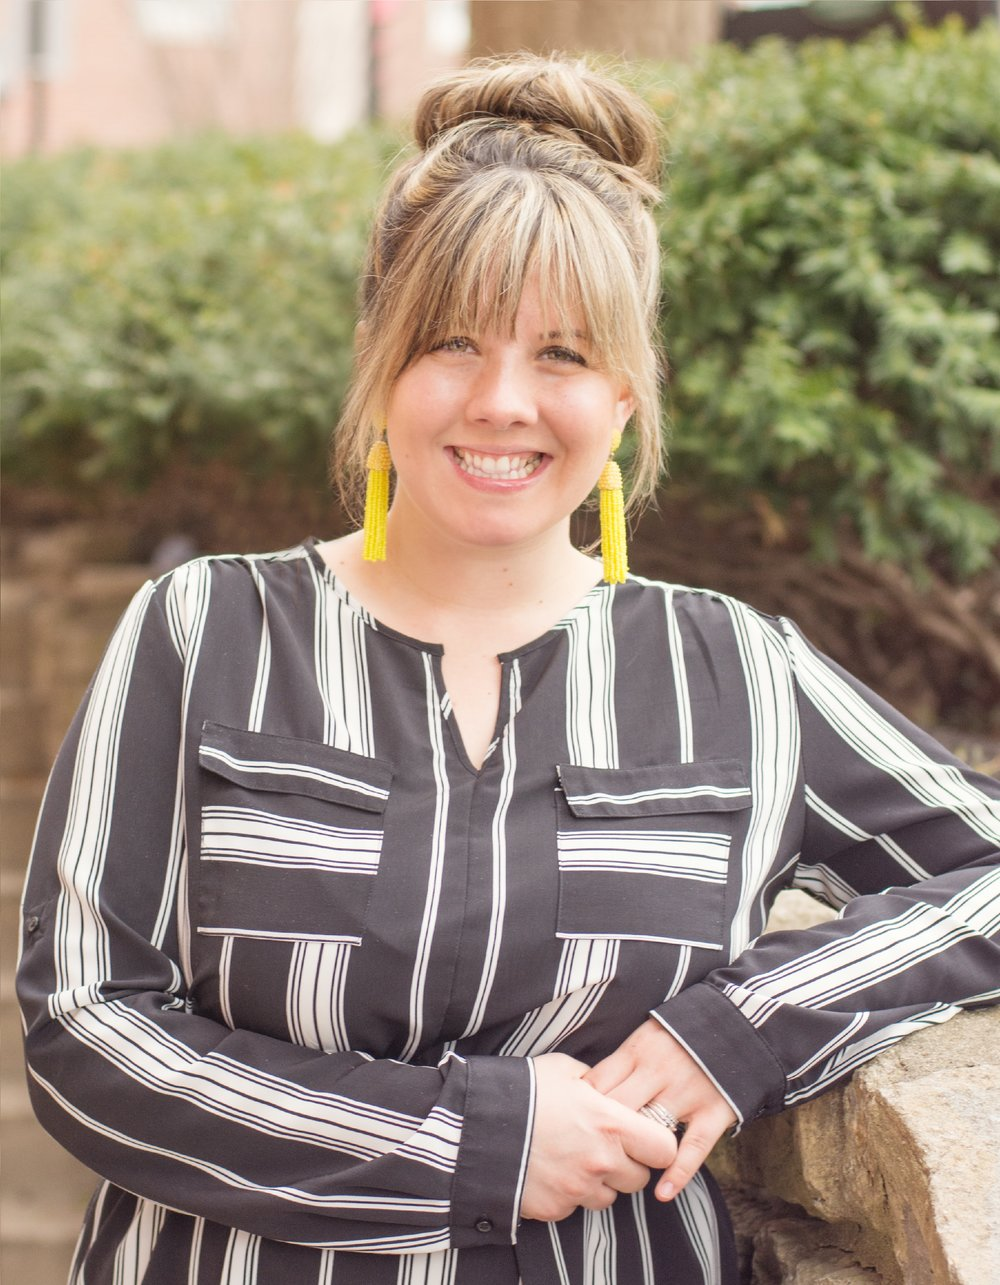 Kacey Widmeyer, M.S. | International Board Certified Lactation Consultant, Postpartum Doula  & Labor Doula